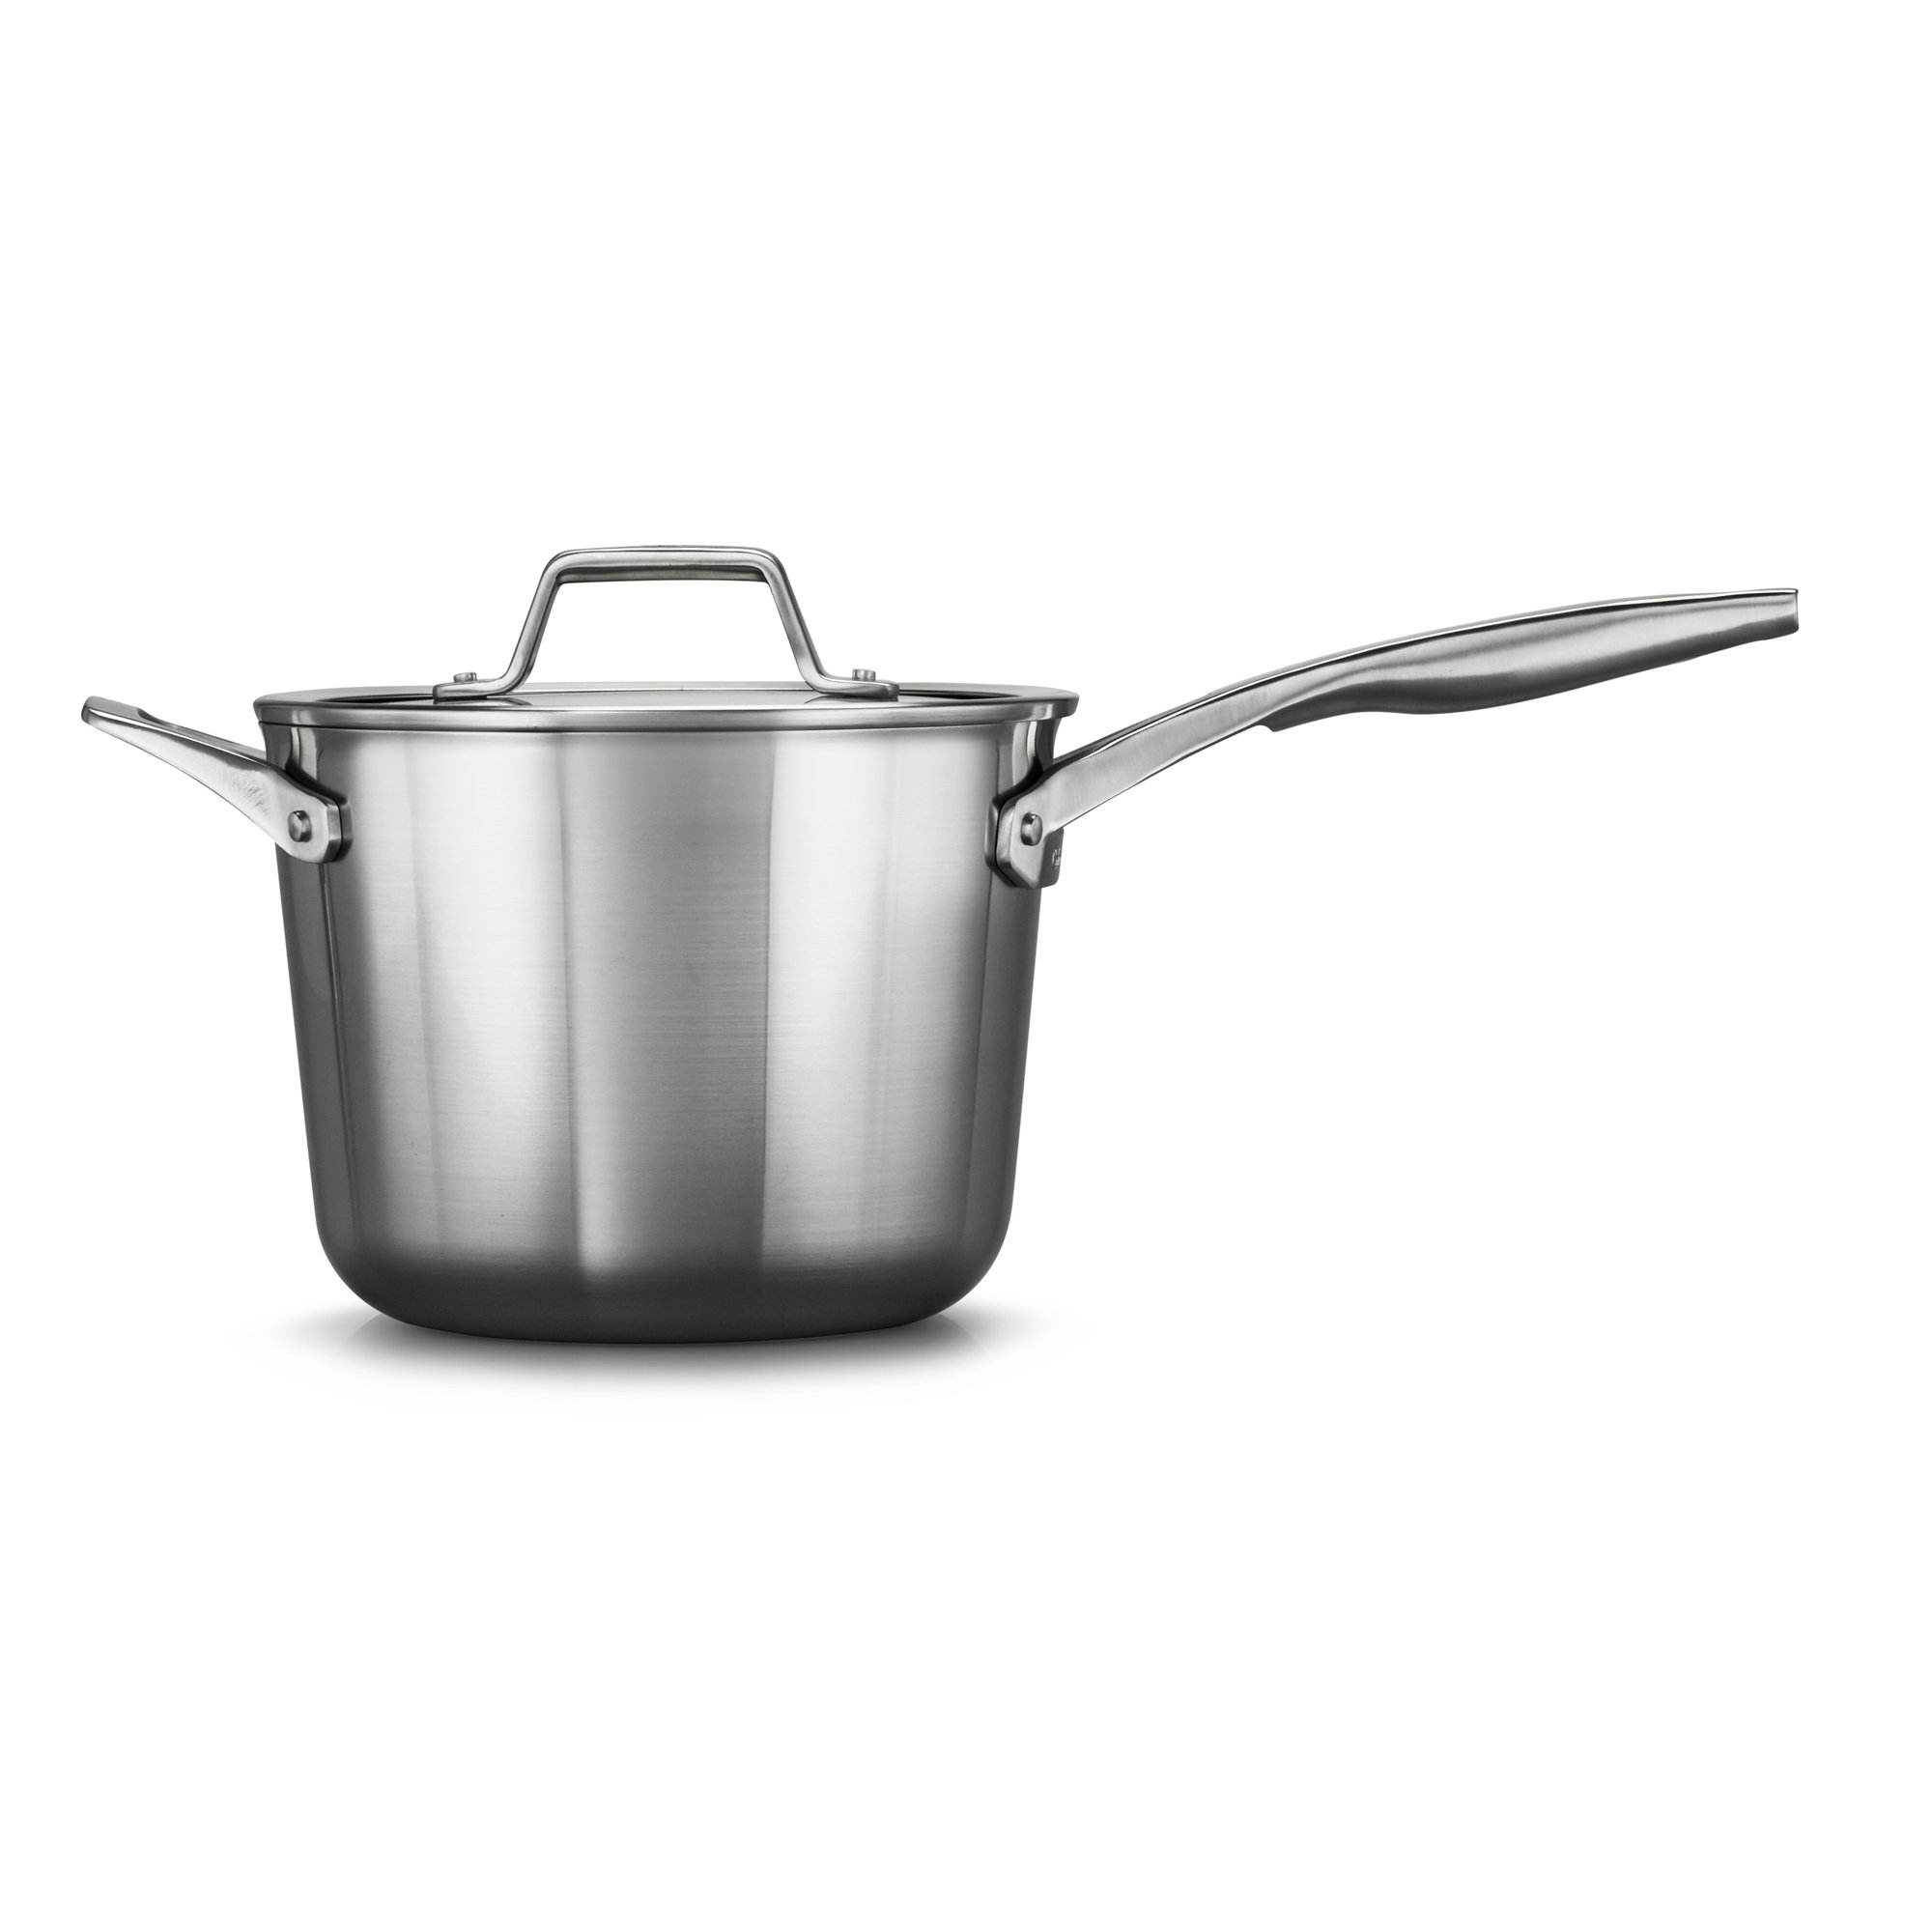 Calphalon Premier Stainless Steel 4.5-Quart Saucepan with Cover